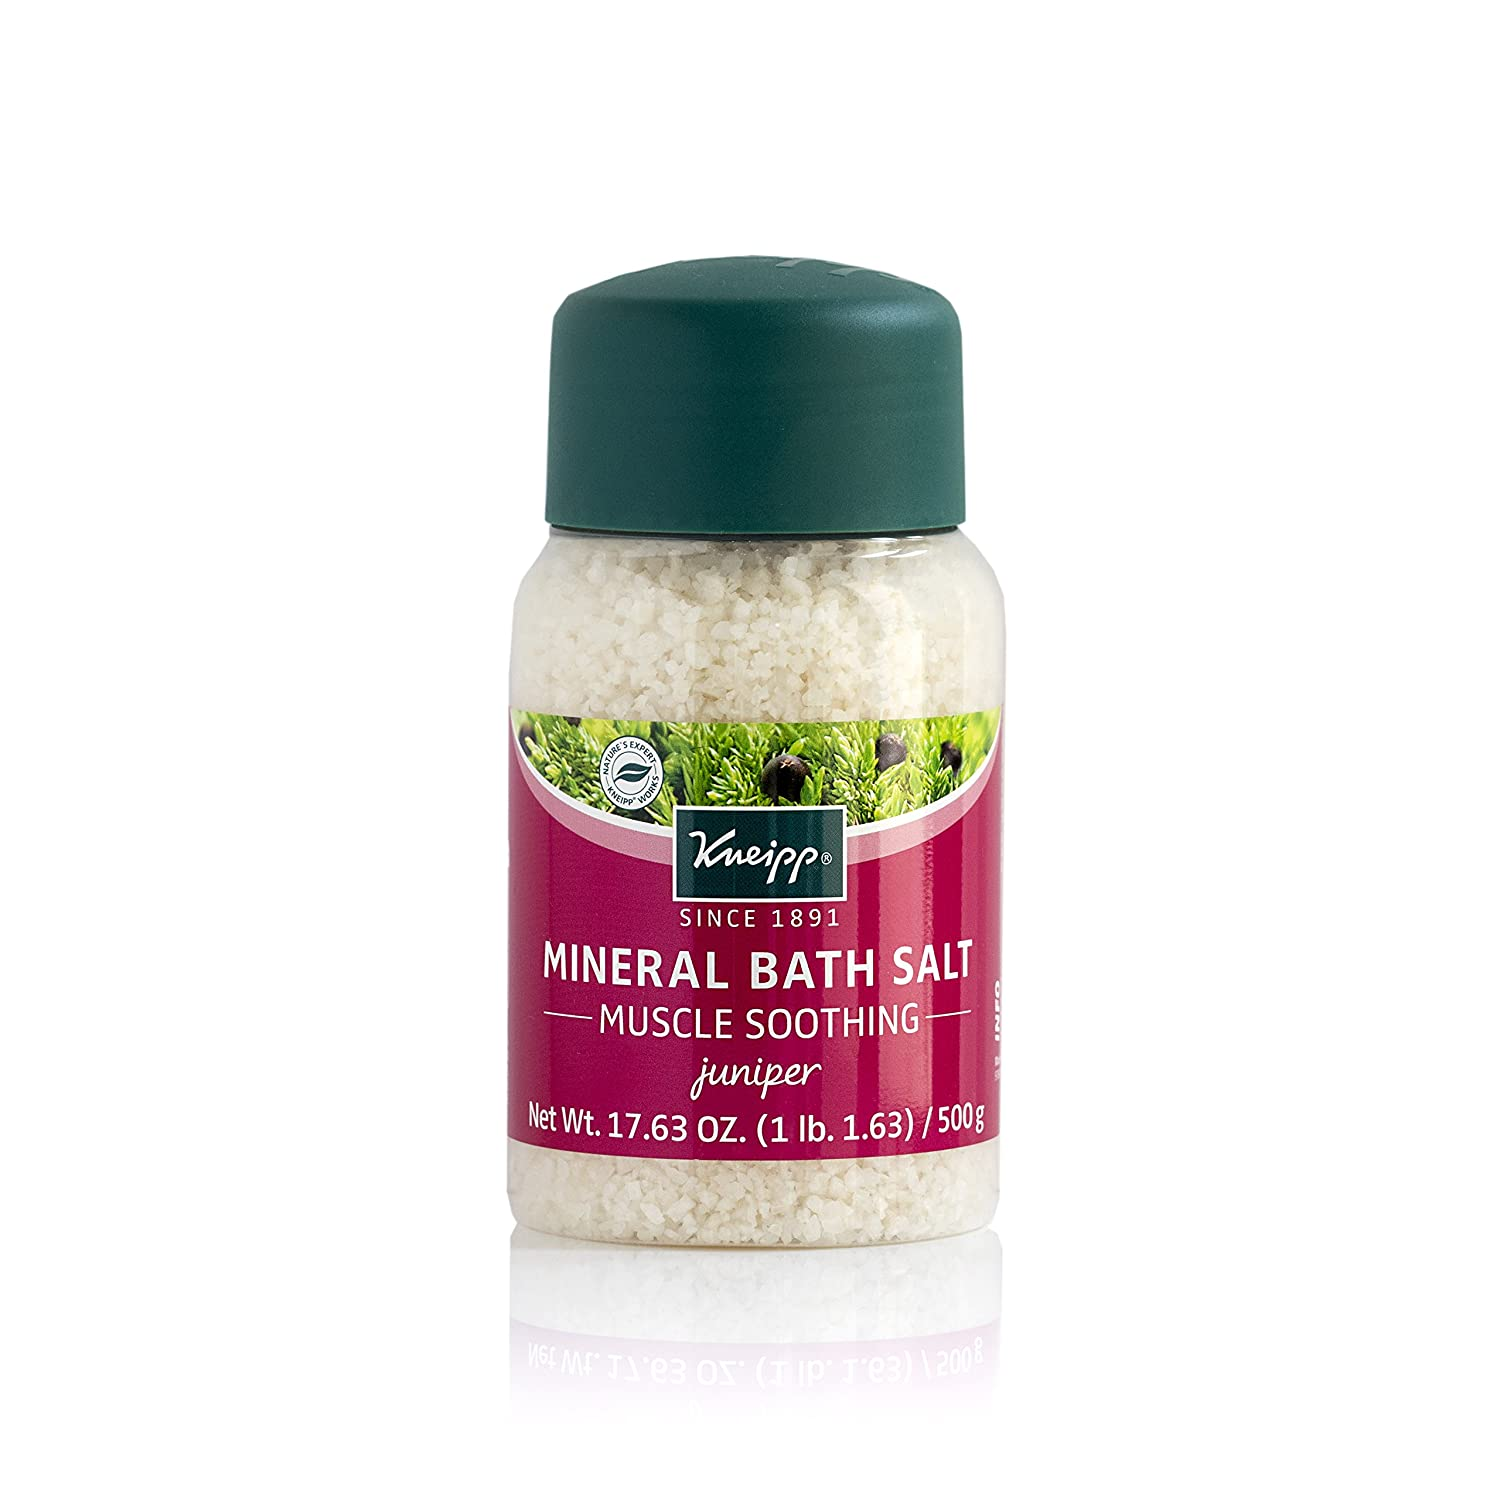 Kneipp MUSCLE SOOTHING MINERAL BATH SALT Tired & Strained Muscles JUNIPER 500g HealthCenter AMZ014